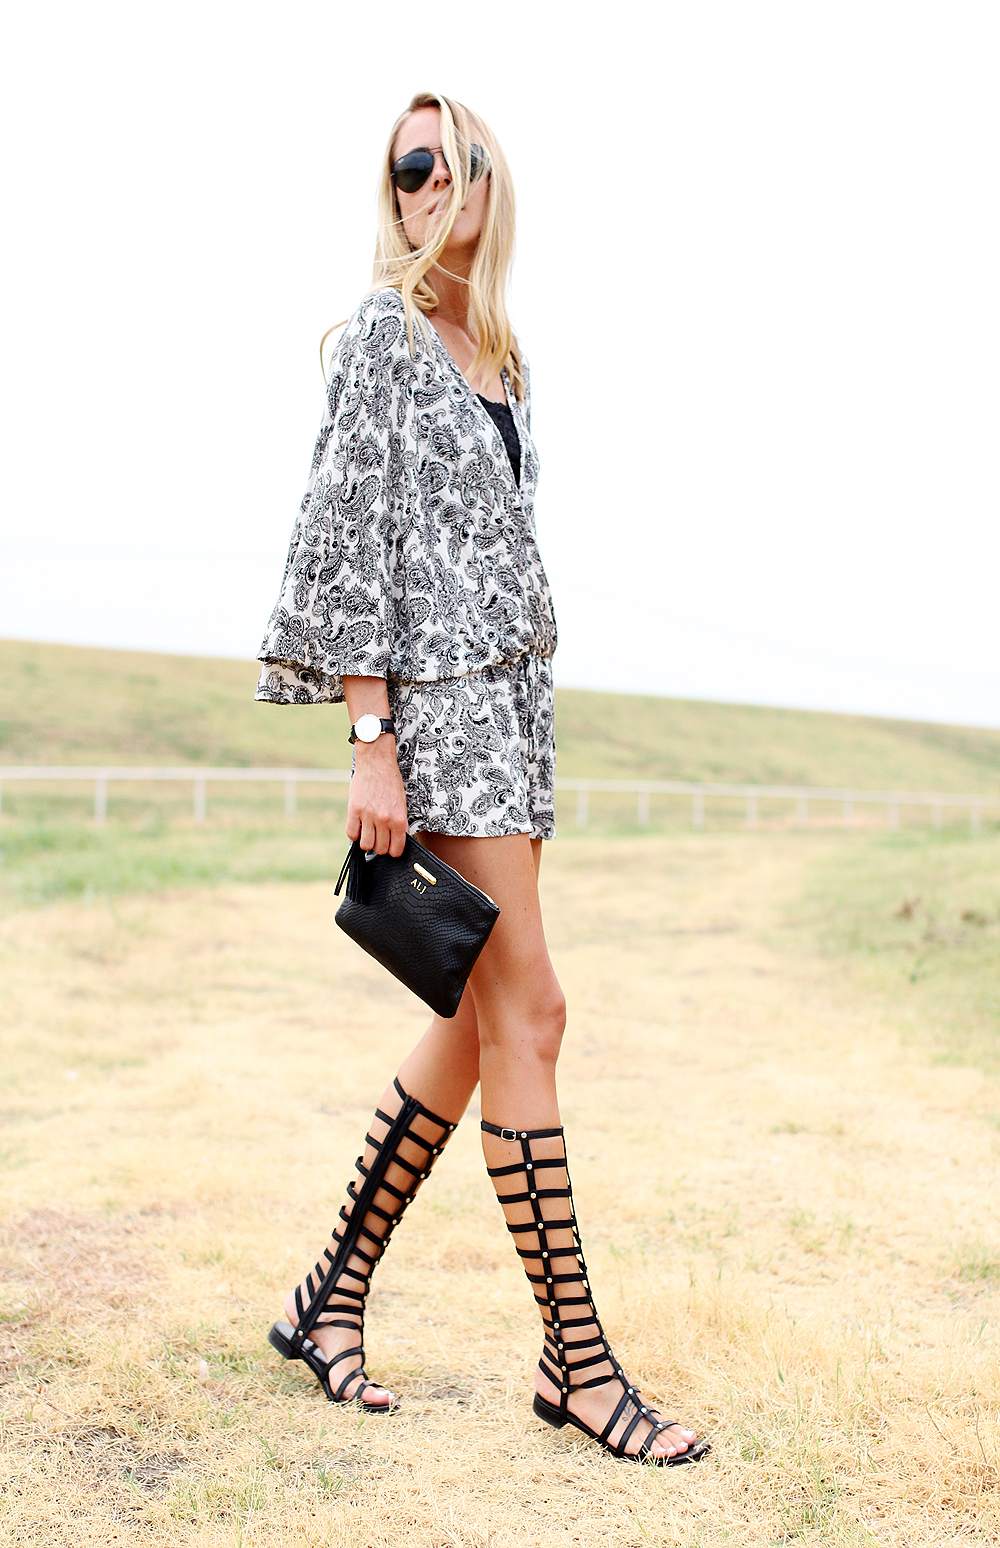 fashion-jackson-stuart-weitzman-black-gladiator-sandals-printed-romper-gigi-new-york-clutch-black-ray-ban-aviator-sunglasses